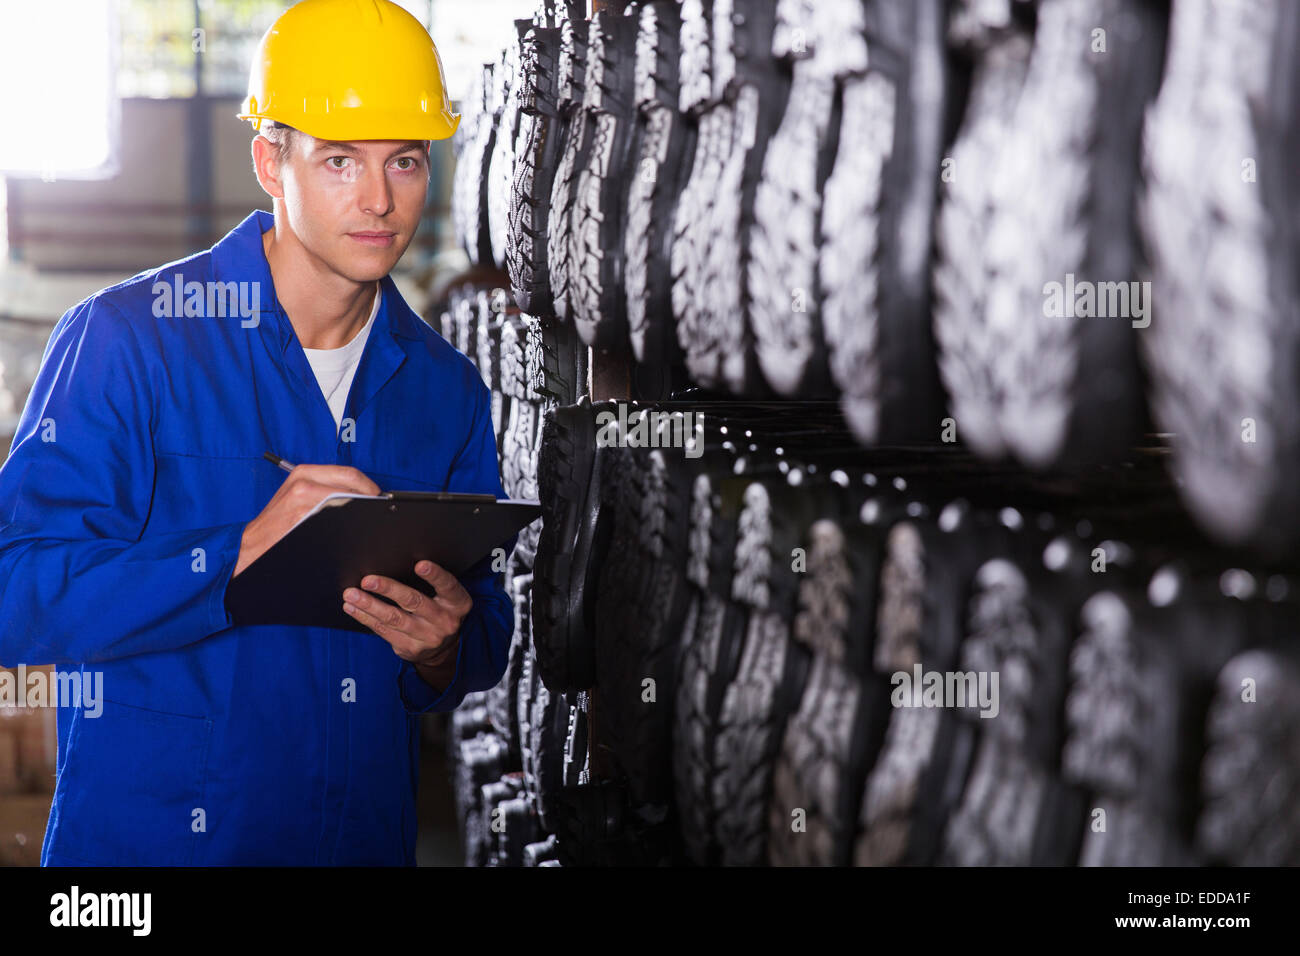 factory quality controller checking gumboots in warehouse - Stock Image